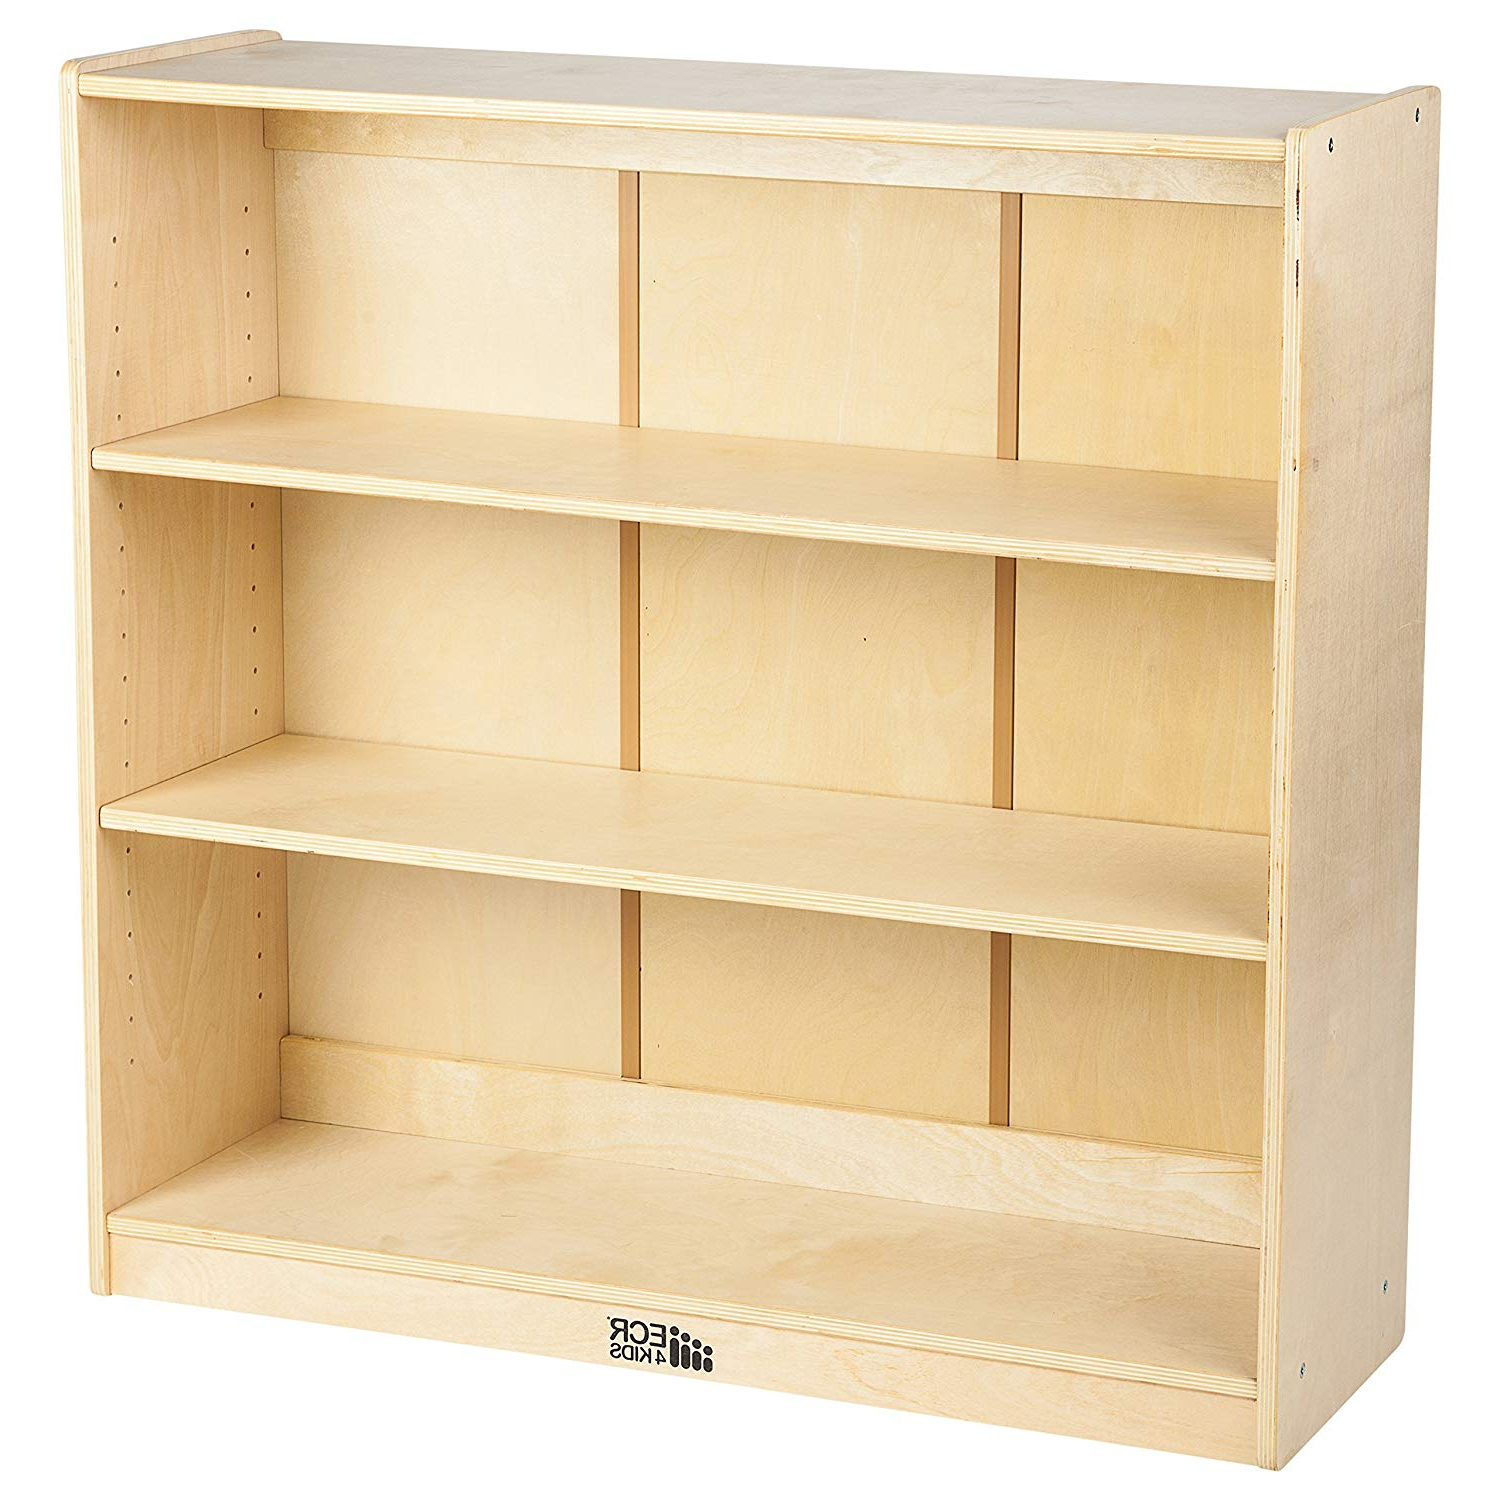 """Most Recent Classroom Cubby Standard Bookcases In Ecr4Kids Birch Bookcase With Adjustable Shelves, Wood Book Shelf Organizer  For Kids, 3 Shelf, Natural, 36"""" H (View 13 of 20)"""